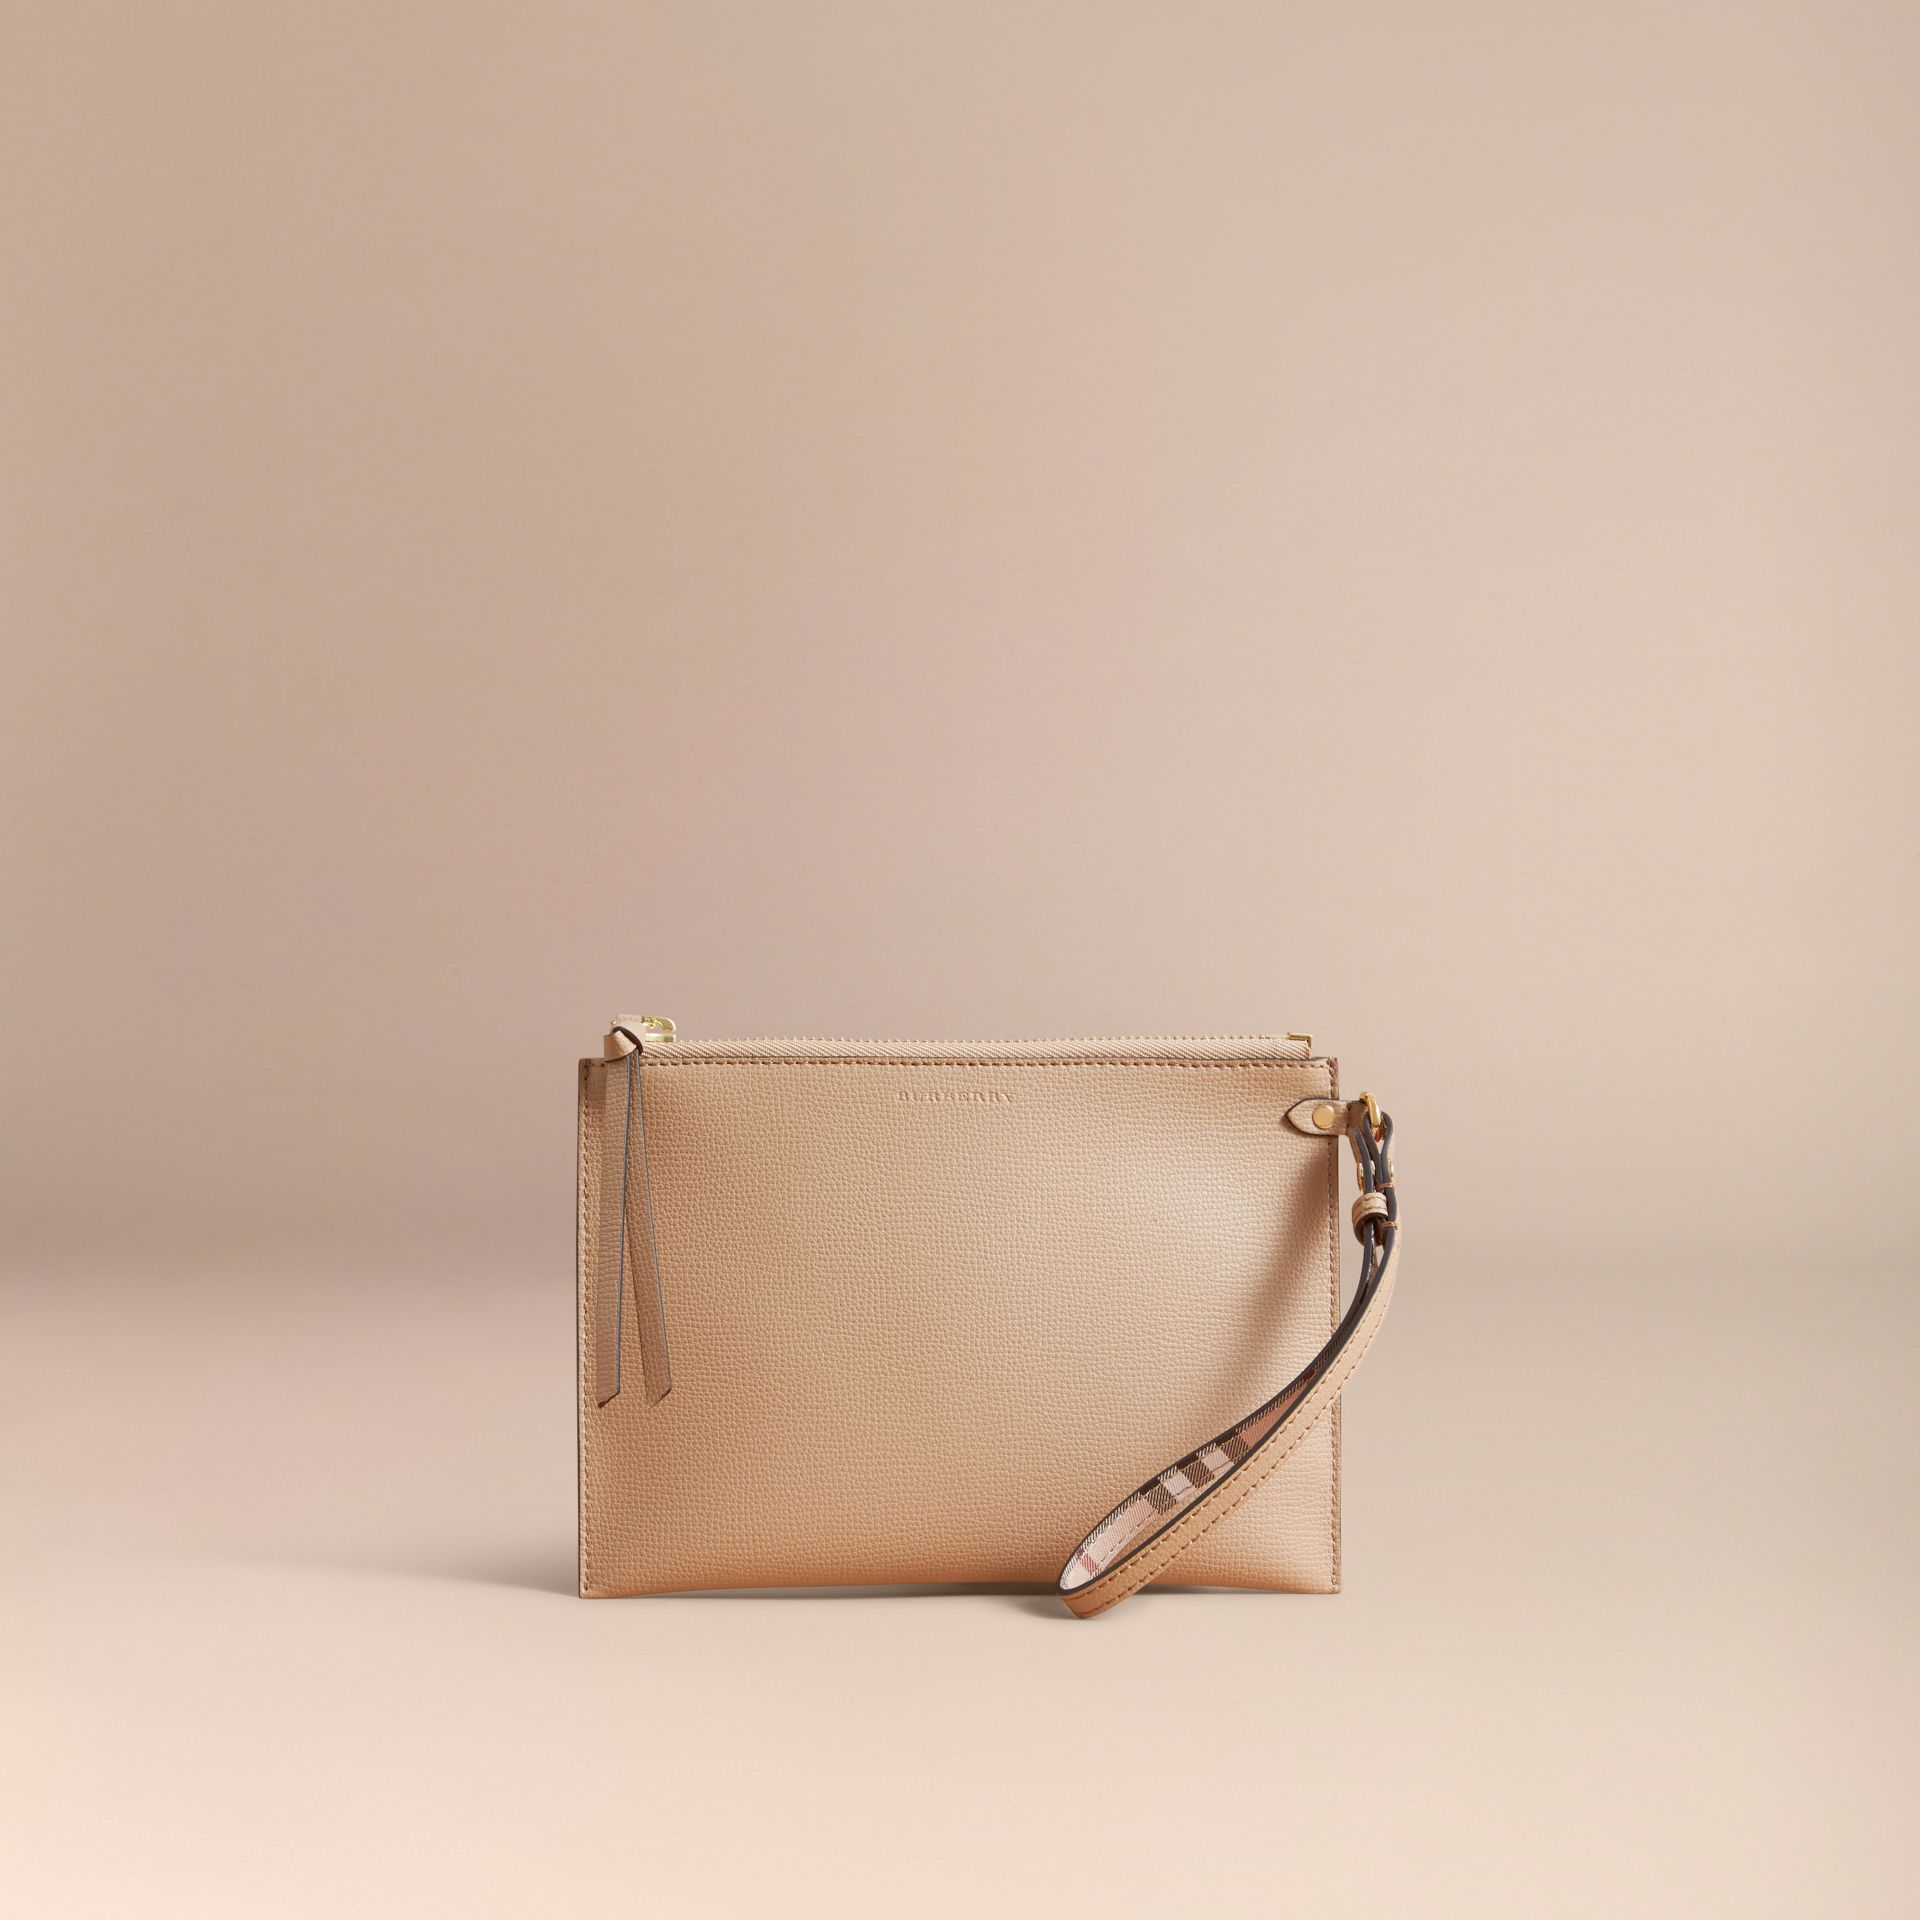 Haymarket Check and Leather Pouch in Mid Camel - Women | Burberry - gallery image 6